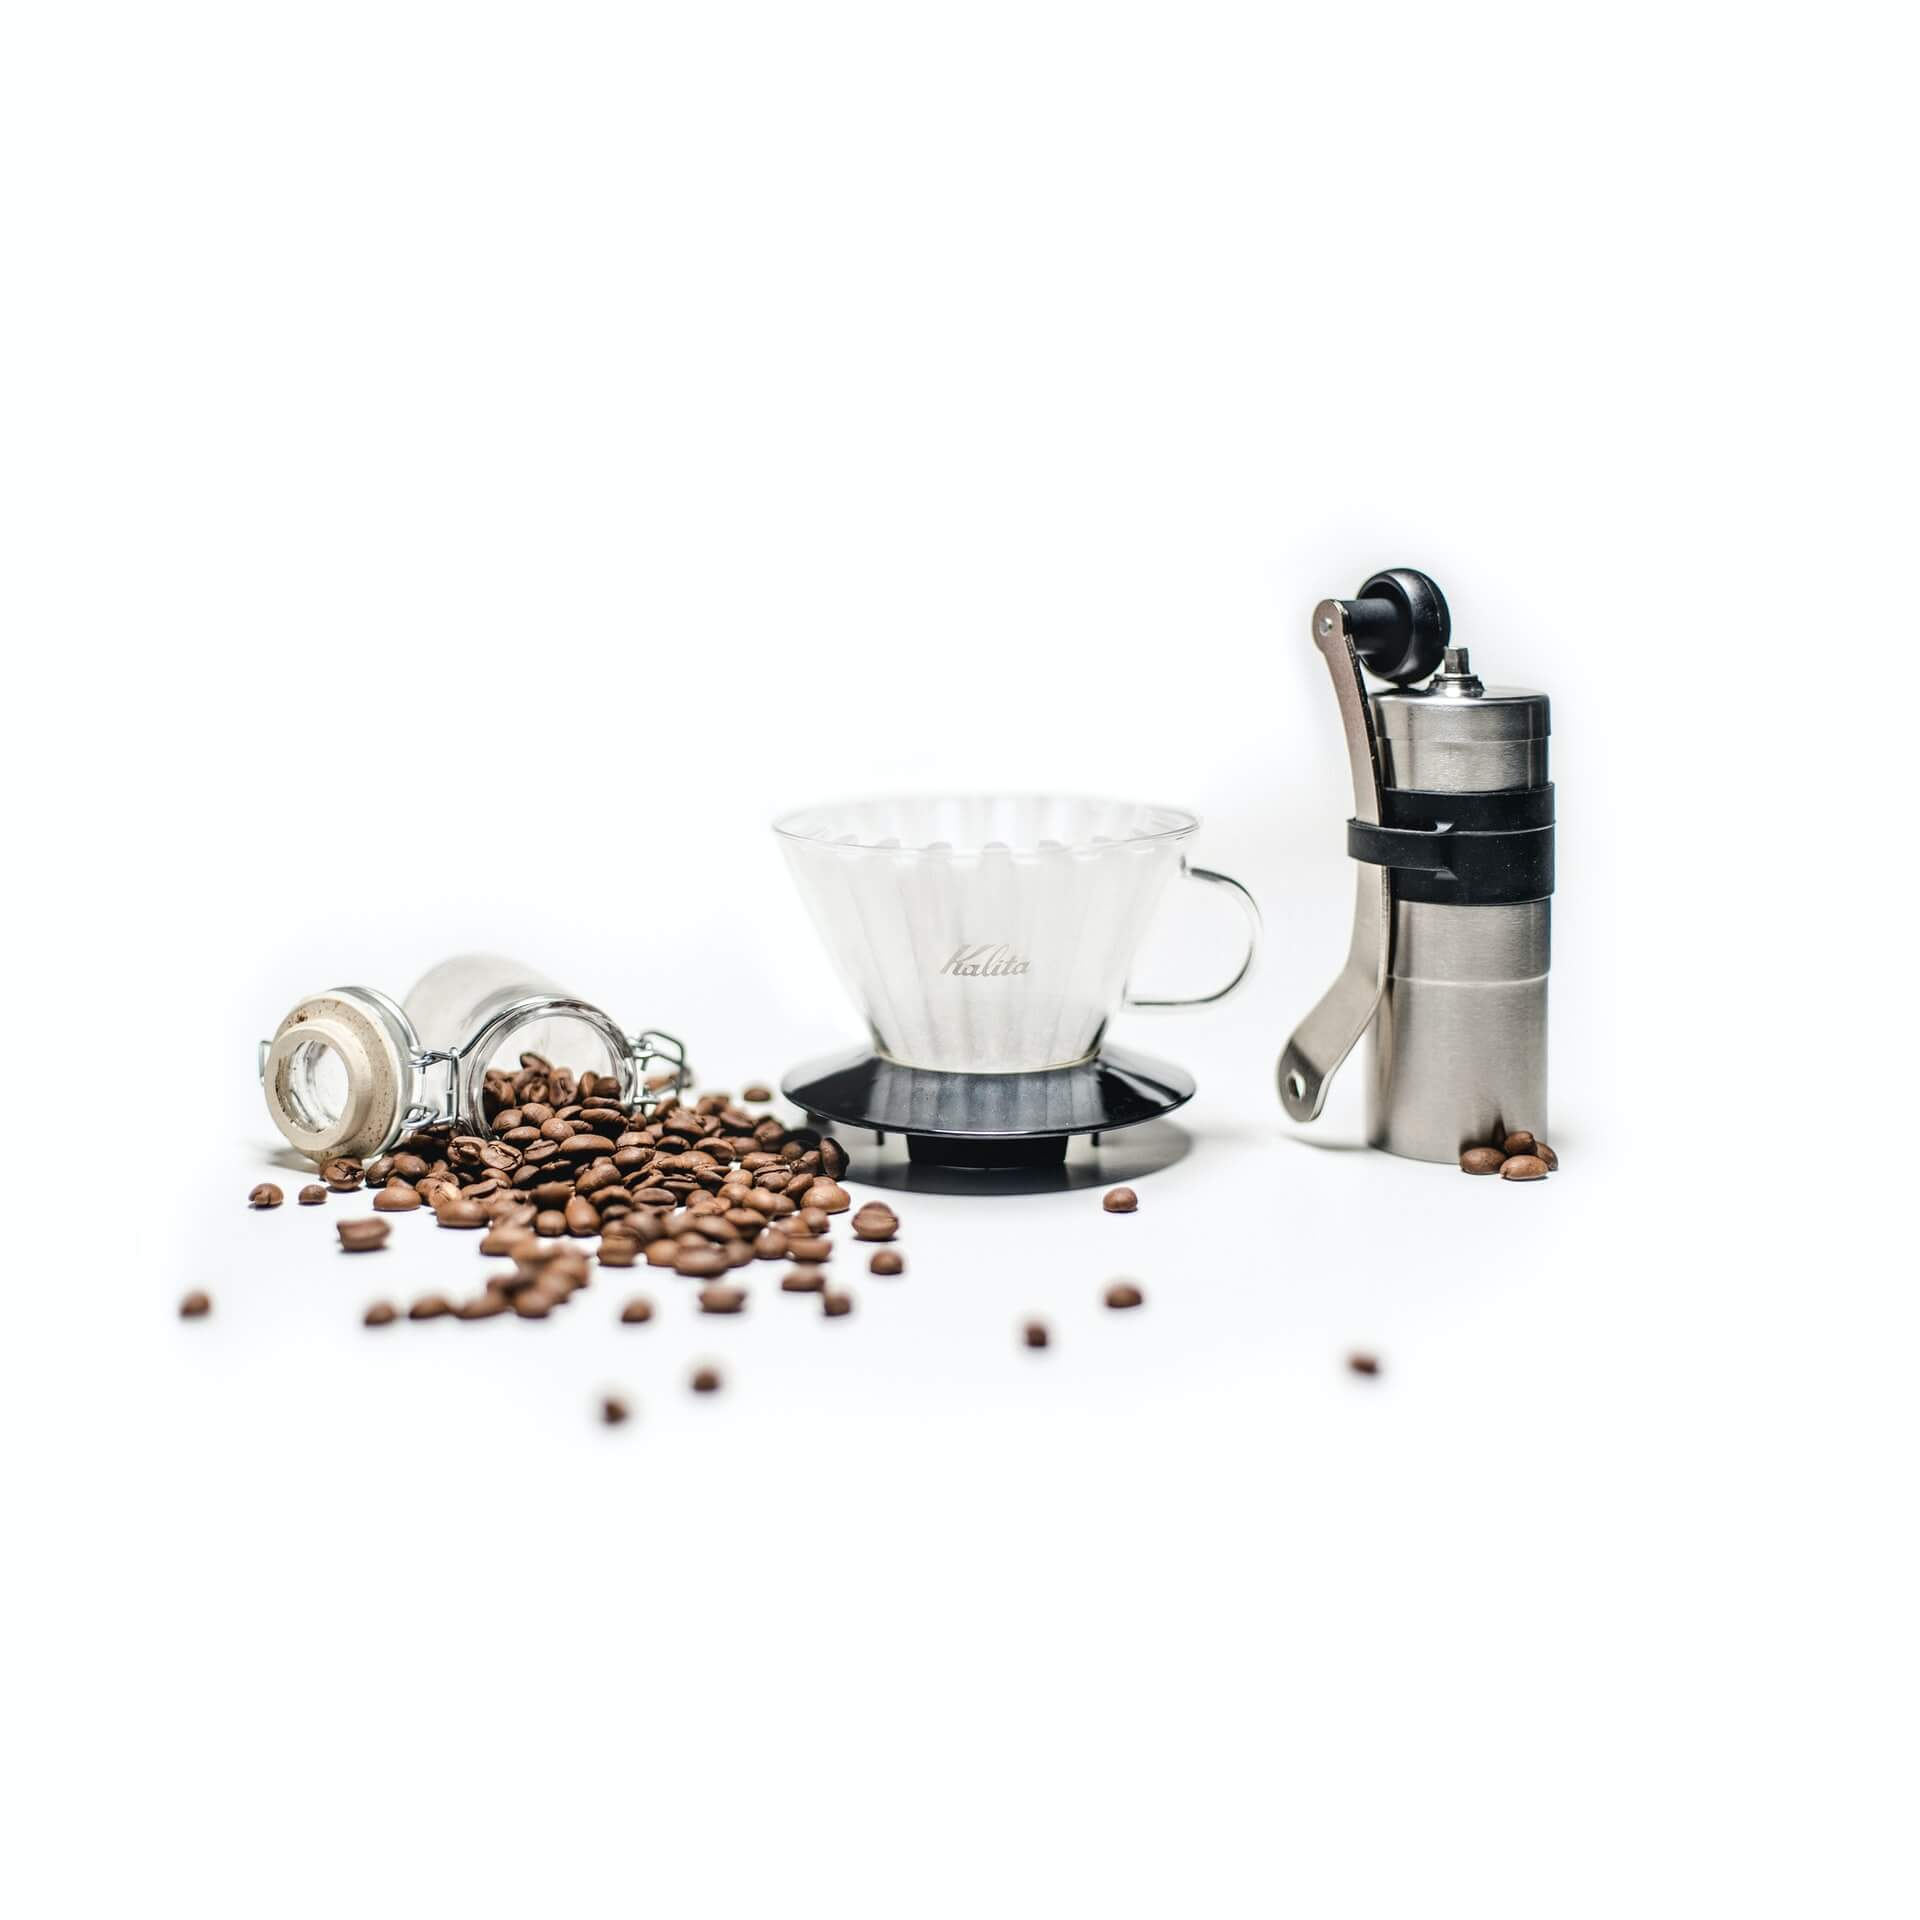 how to clean a manual grinder